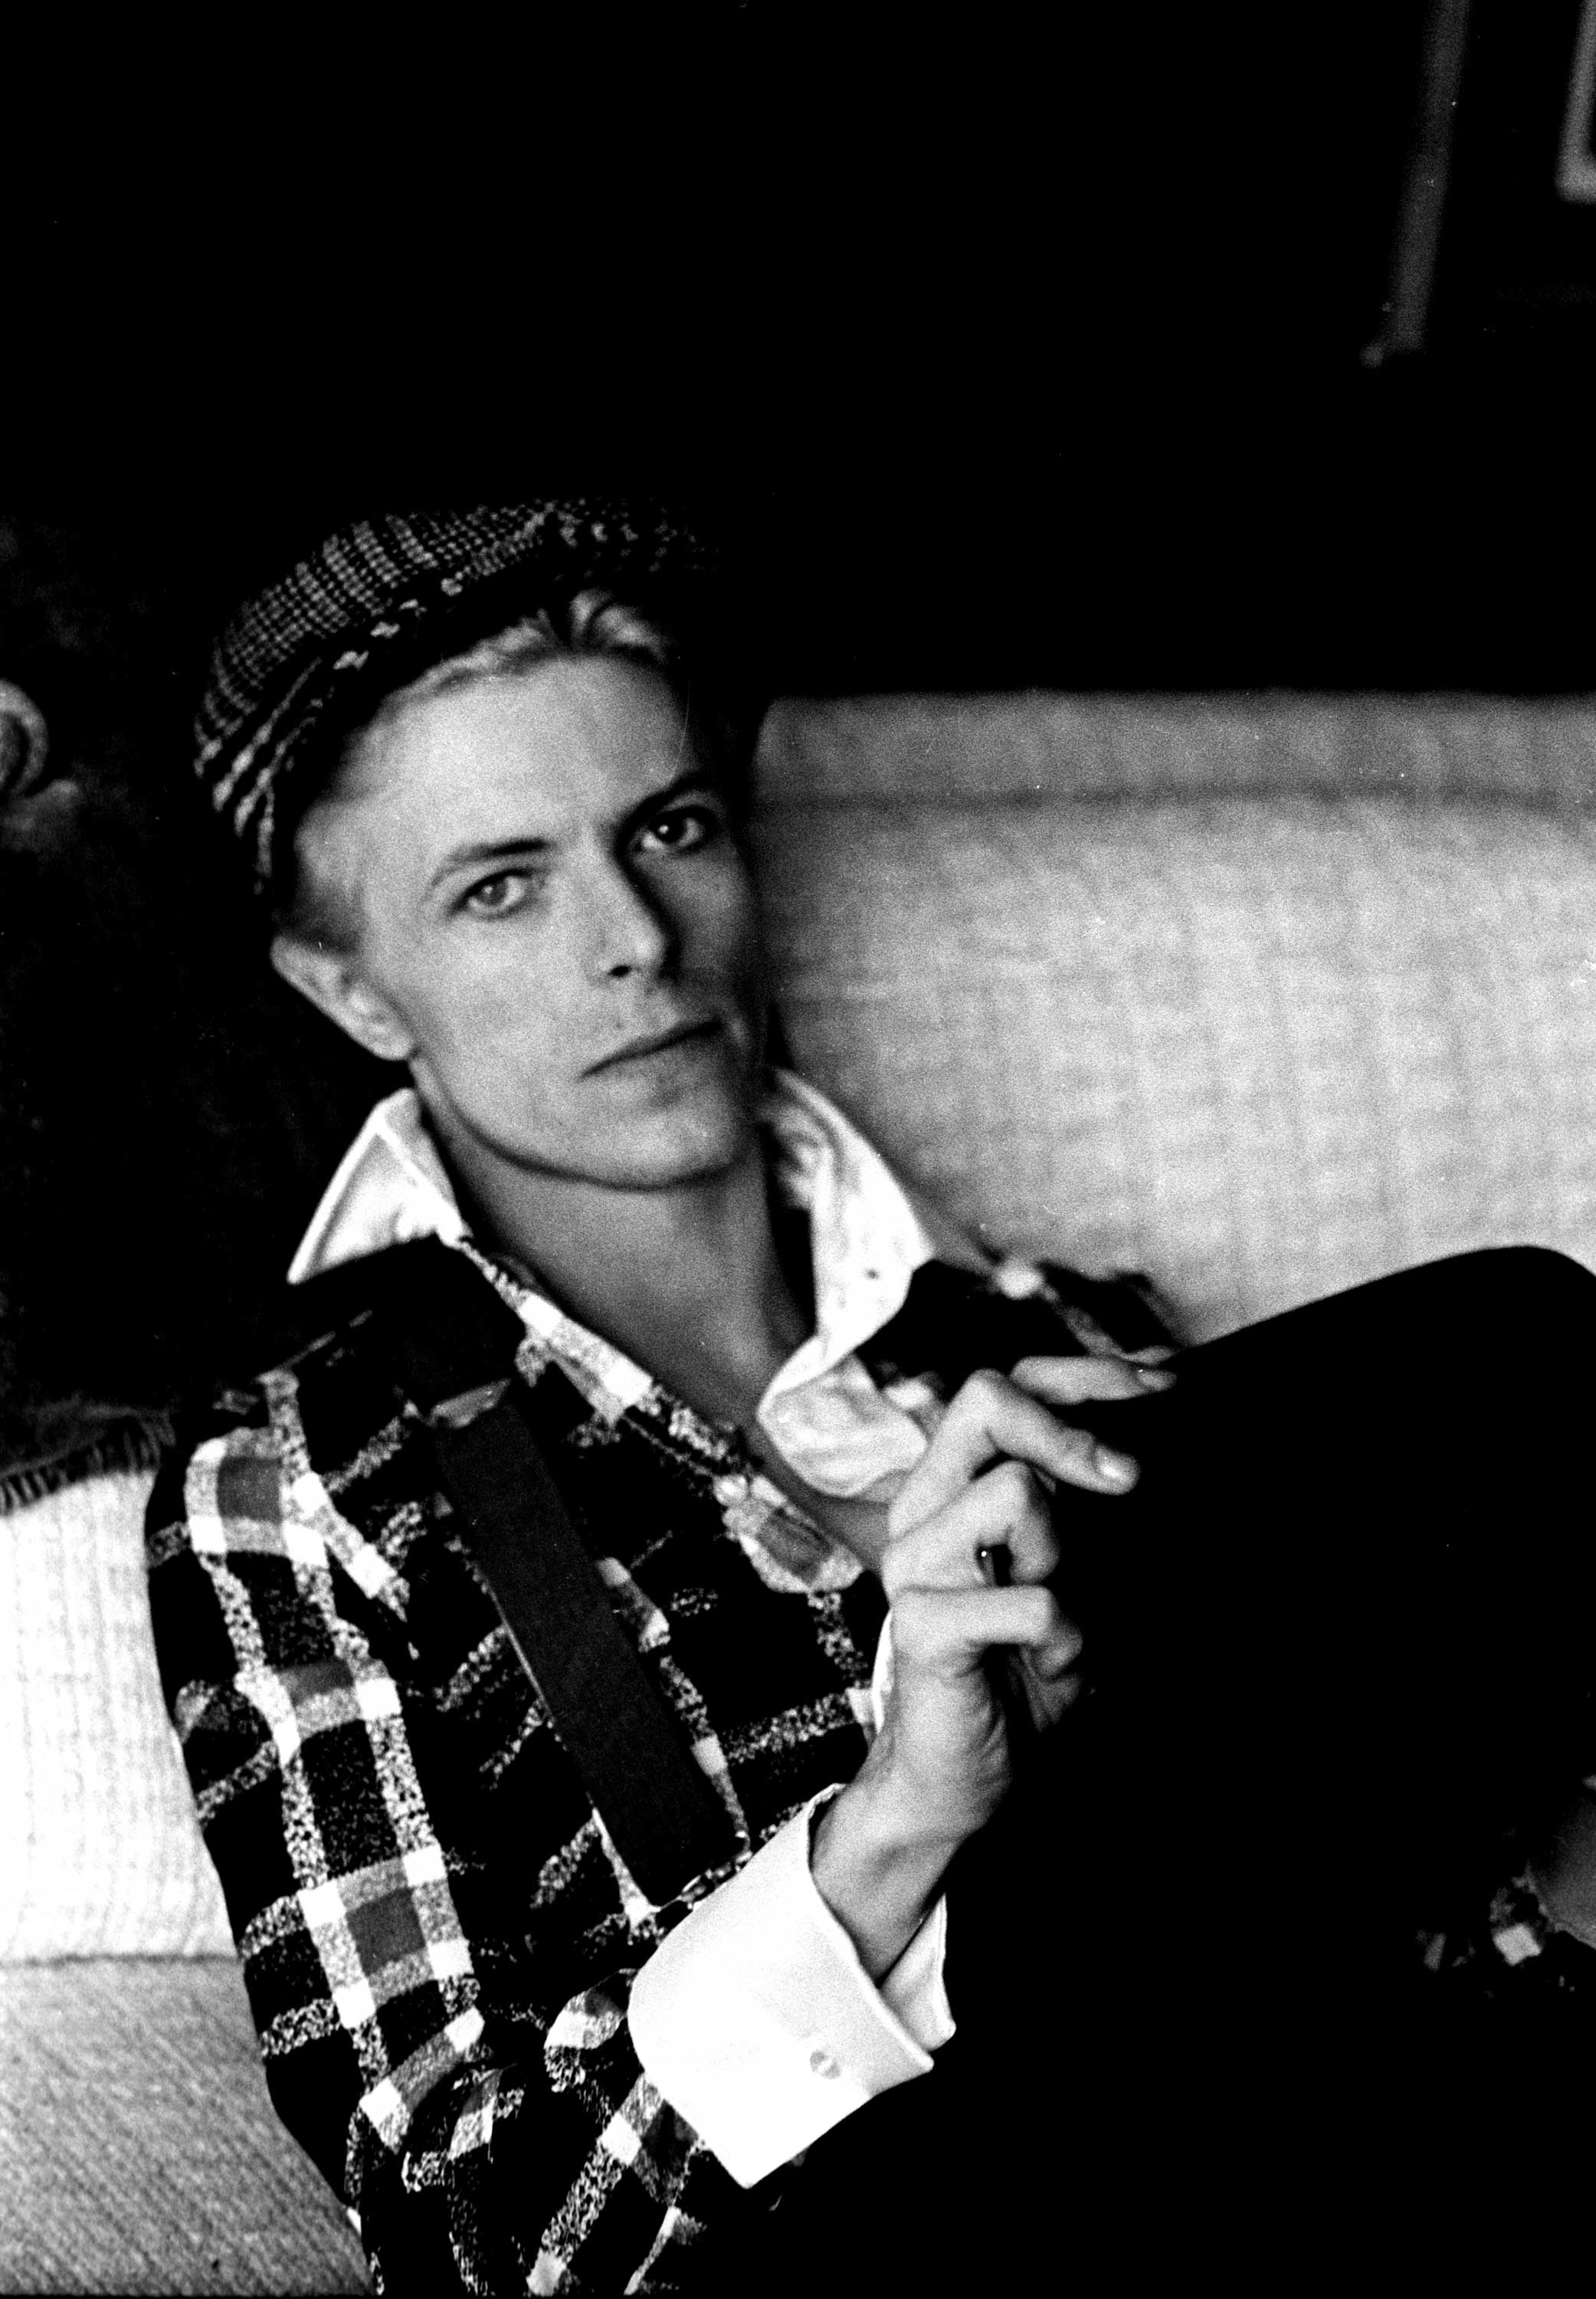 David Bowie portrait, Los Angeles, 1975.Steve Schapiro: David relaxed at his house in Los Angeles 1975. I love his hands.